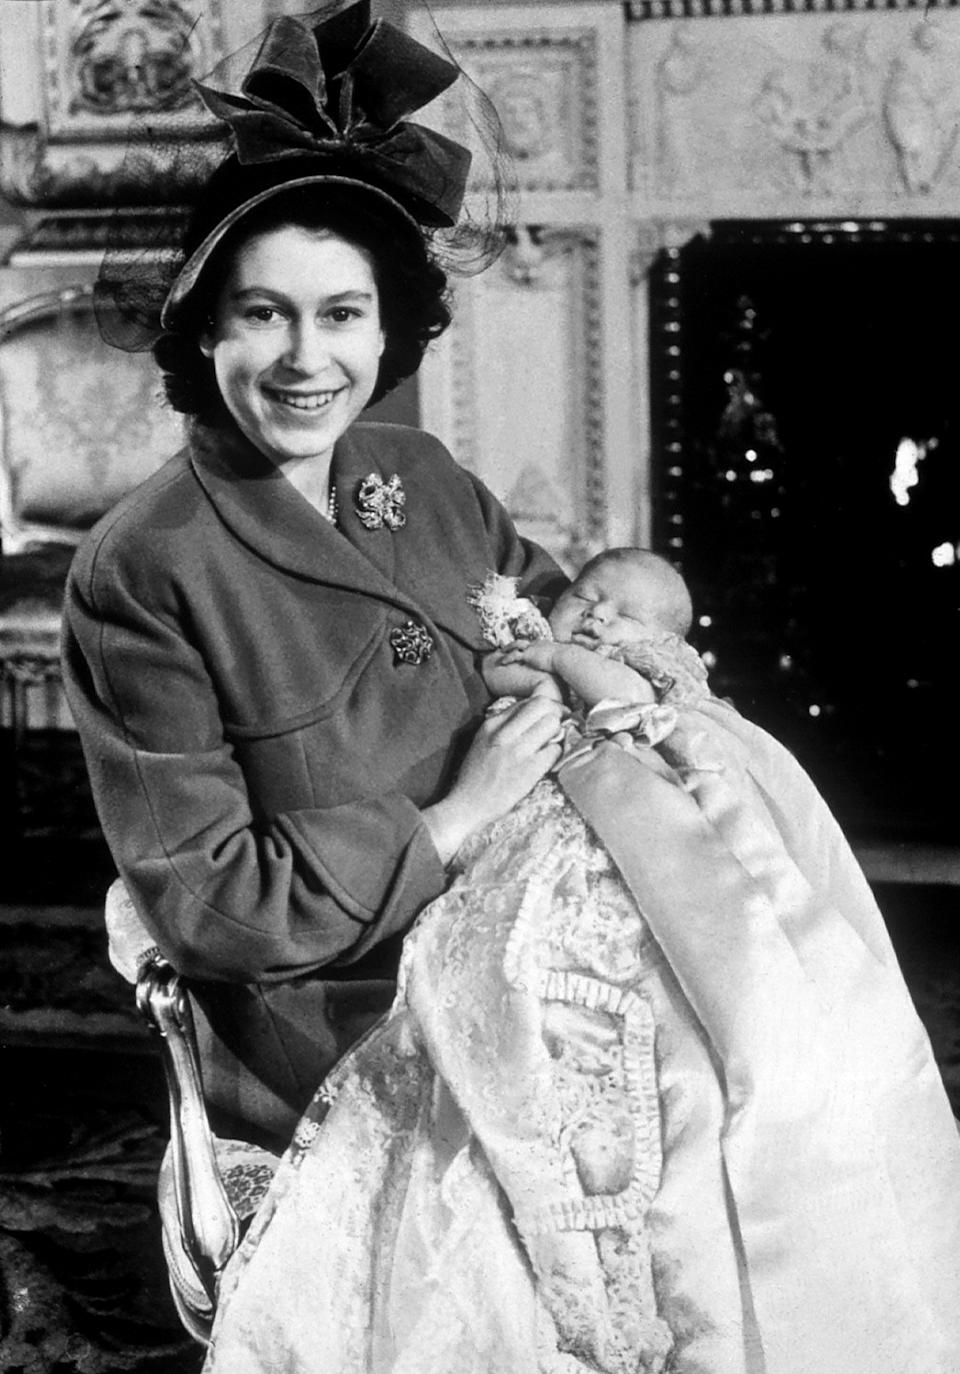 Her Majesty Queen Elizabeth II pictured when she was Princess Elizabeth with her first baby Prince Charles at Christening 1948 weby queen010306 dtgu2 (Photo by mirrorpix/Mirrorpix/Mirrorpix via Getty Images)